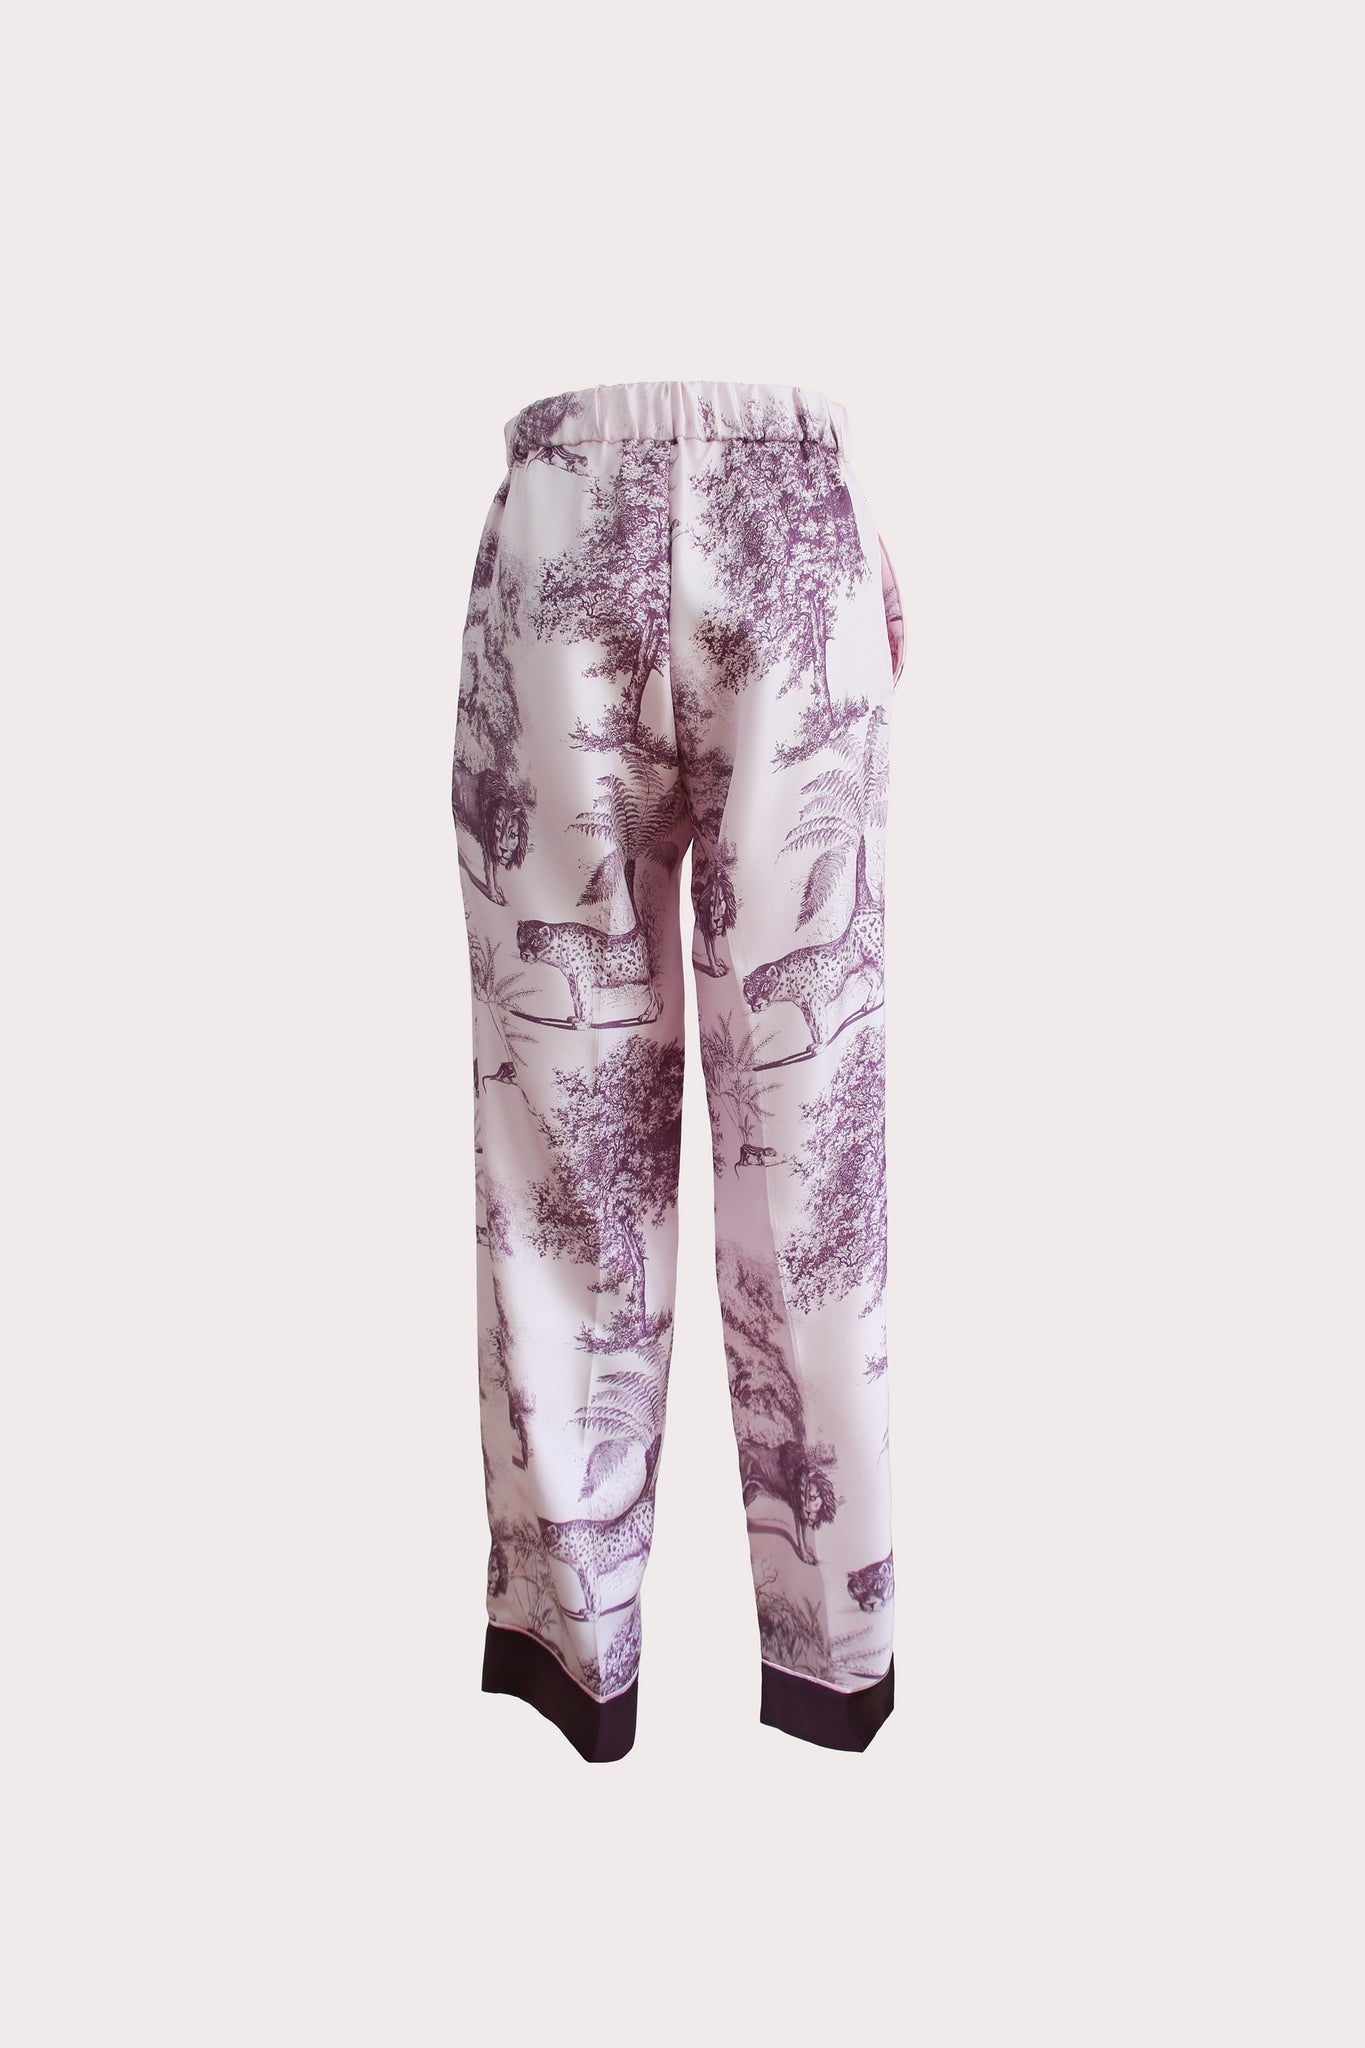 Katyusha Mauve Beasts twill silk pants